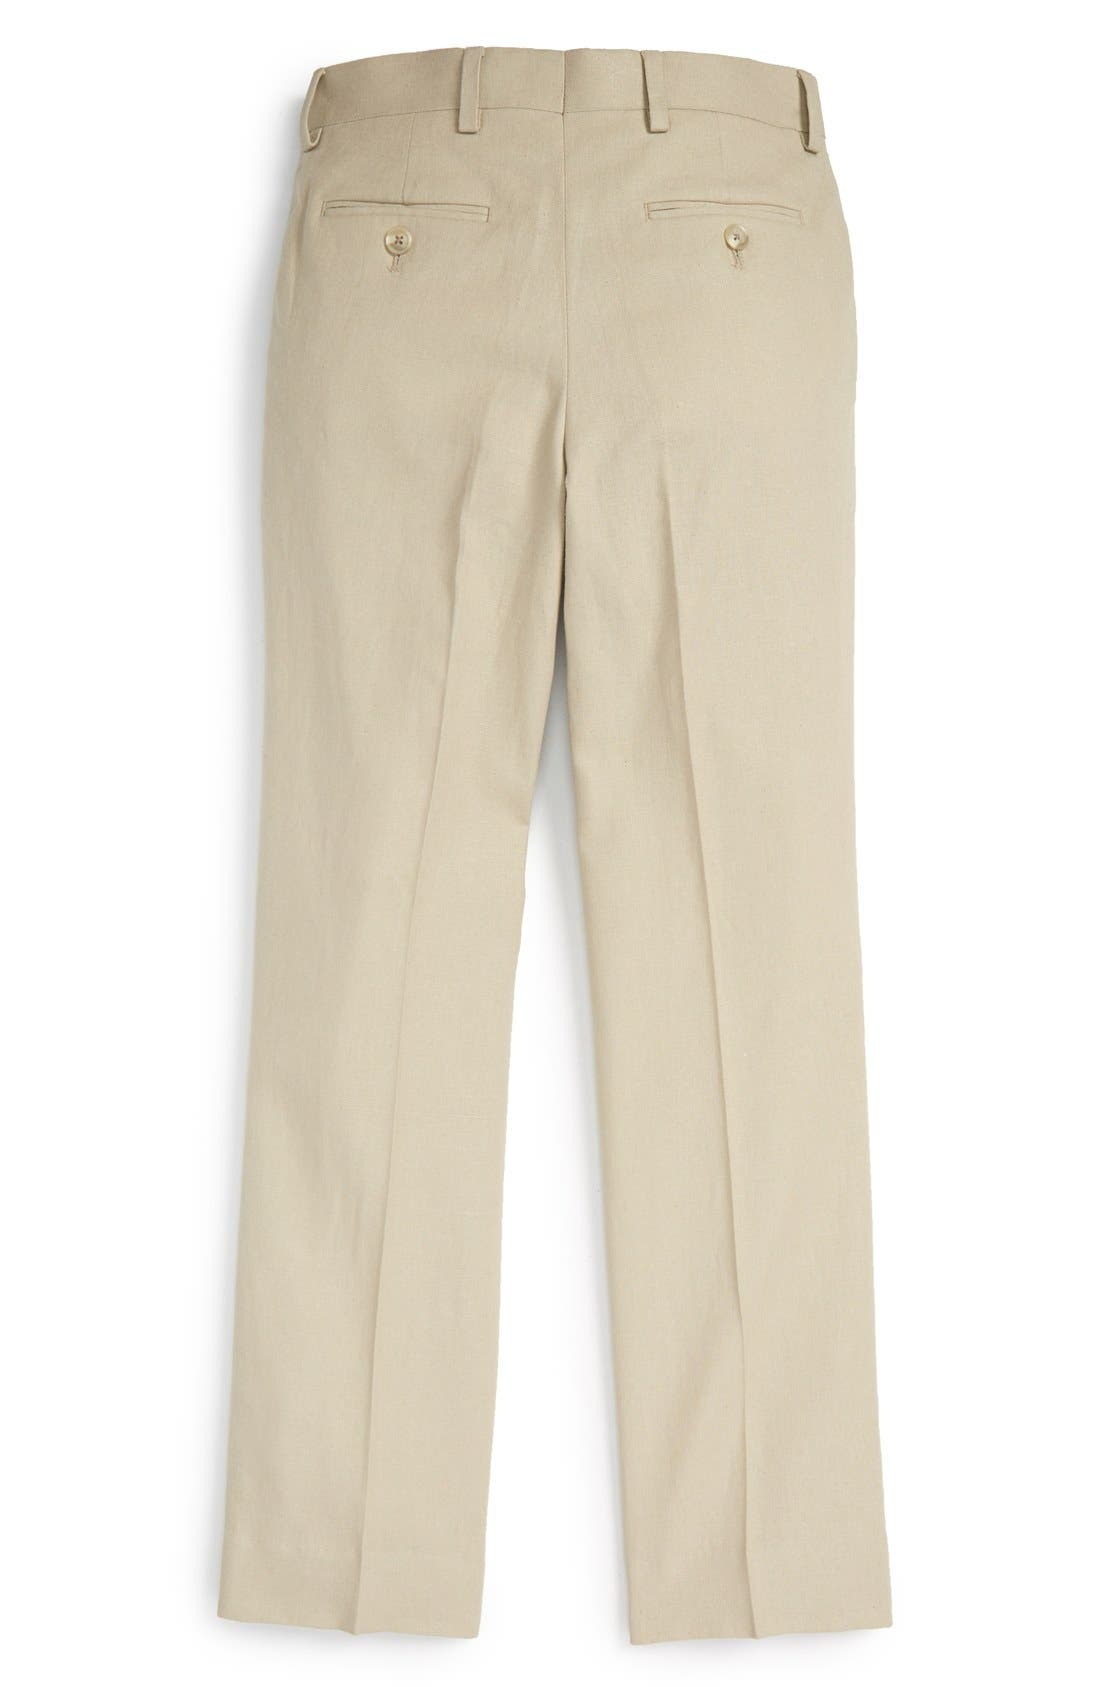 'Kirton' Flat Front Linen Blend Trousers,                             Alternate thumbnail 3, color,                             284